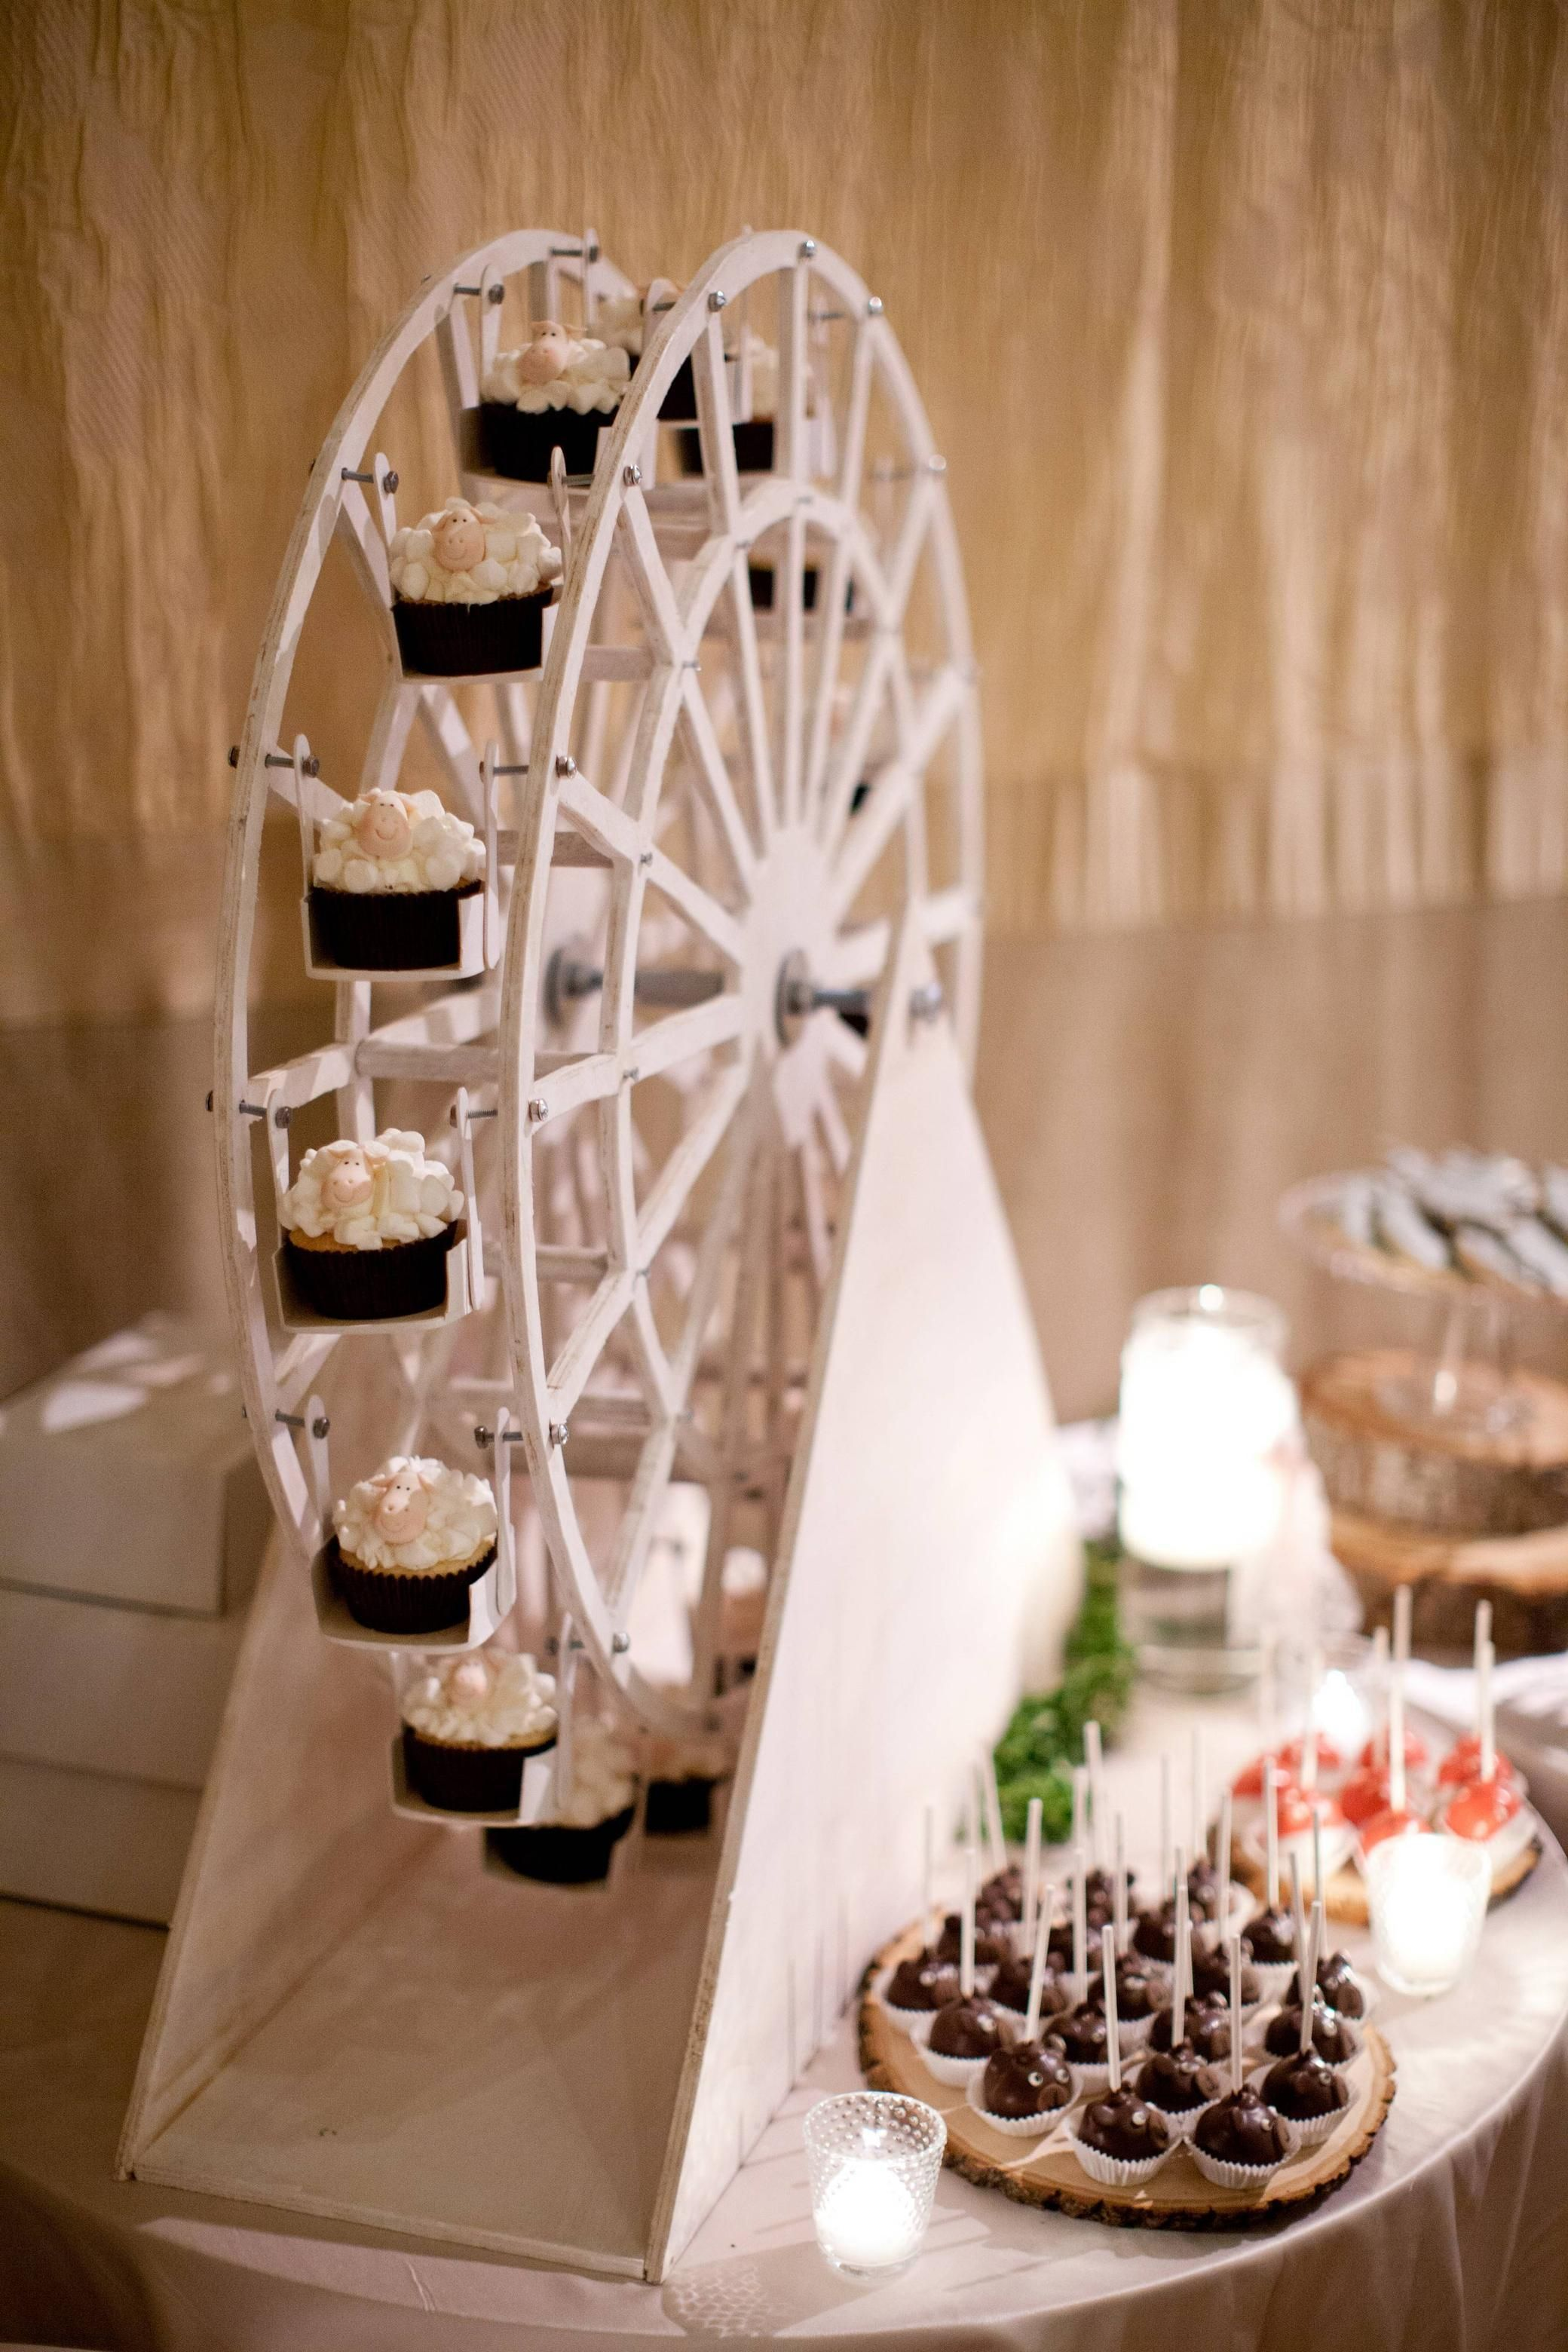 Uncategorized cupcake stands for weddings cheap - My Husband Then Fianc Made A Cupcake Ferris Wheel For Our Wedding